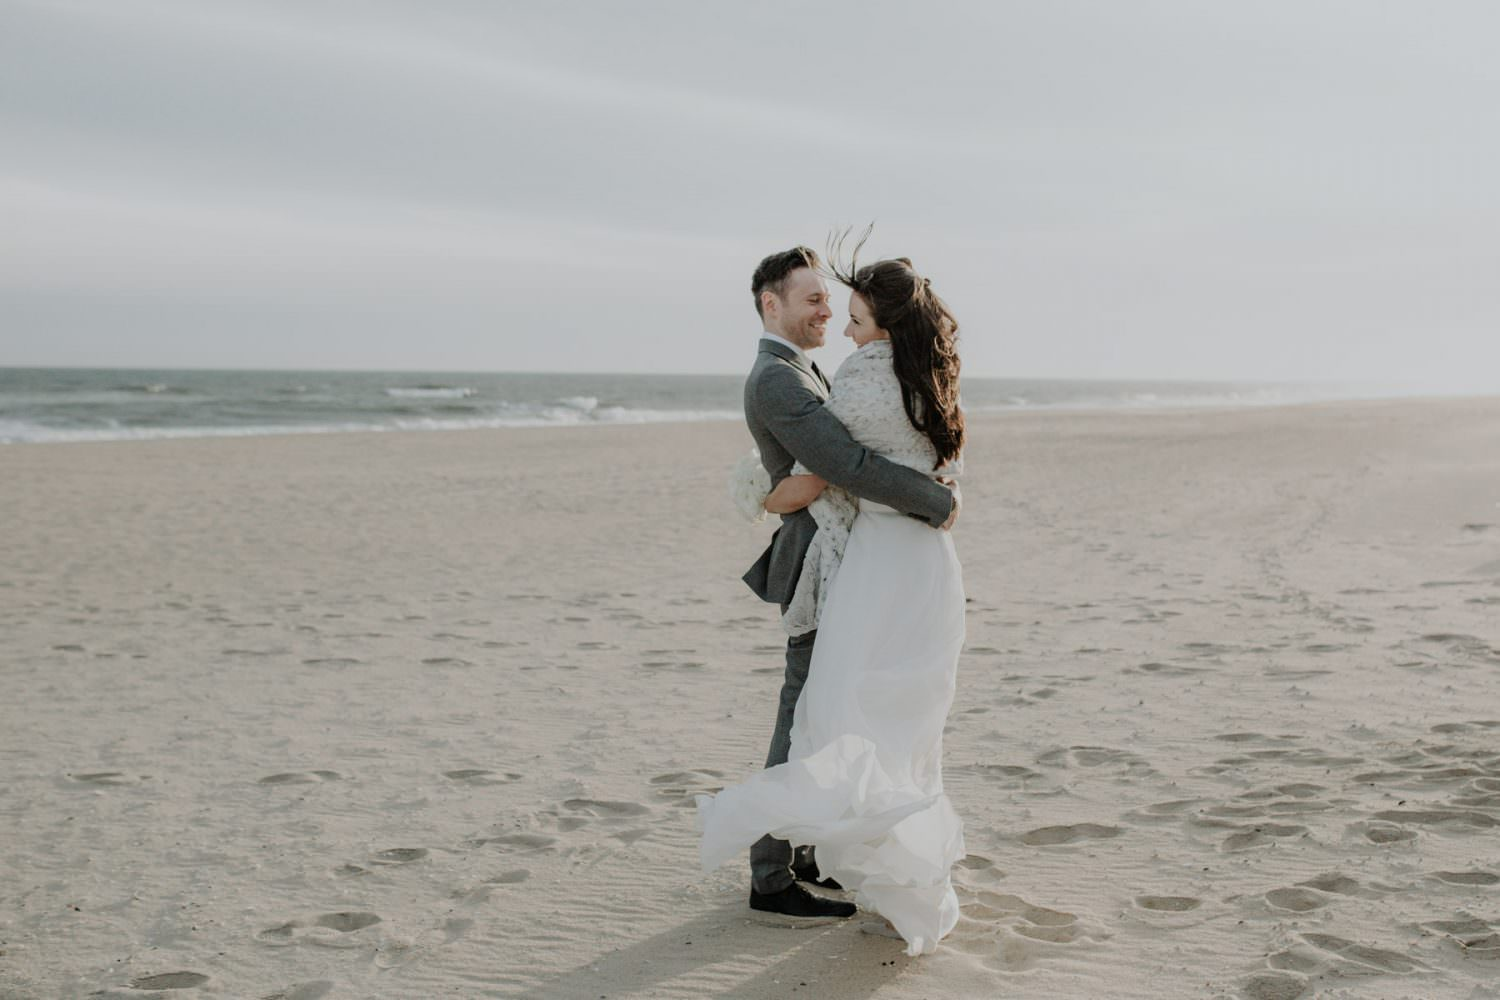 Bride and Groom holding each other on a winter beach scene in Montauk